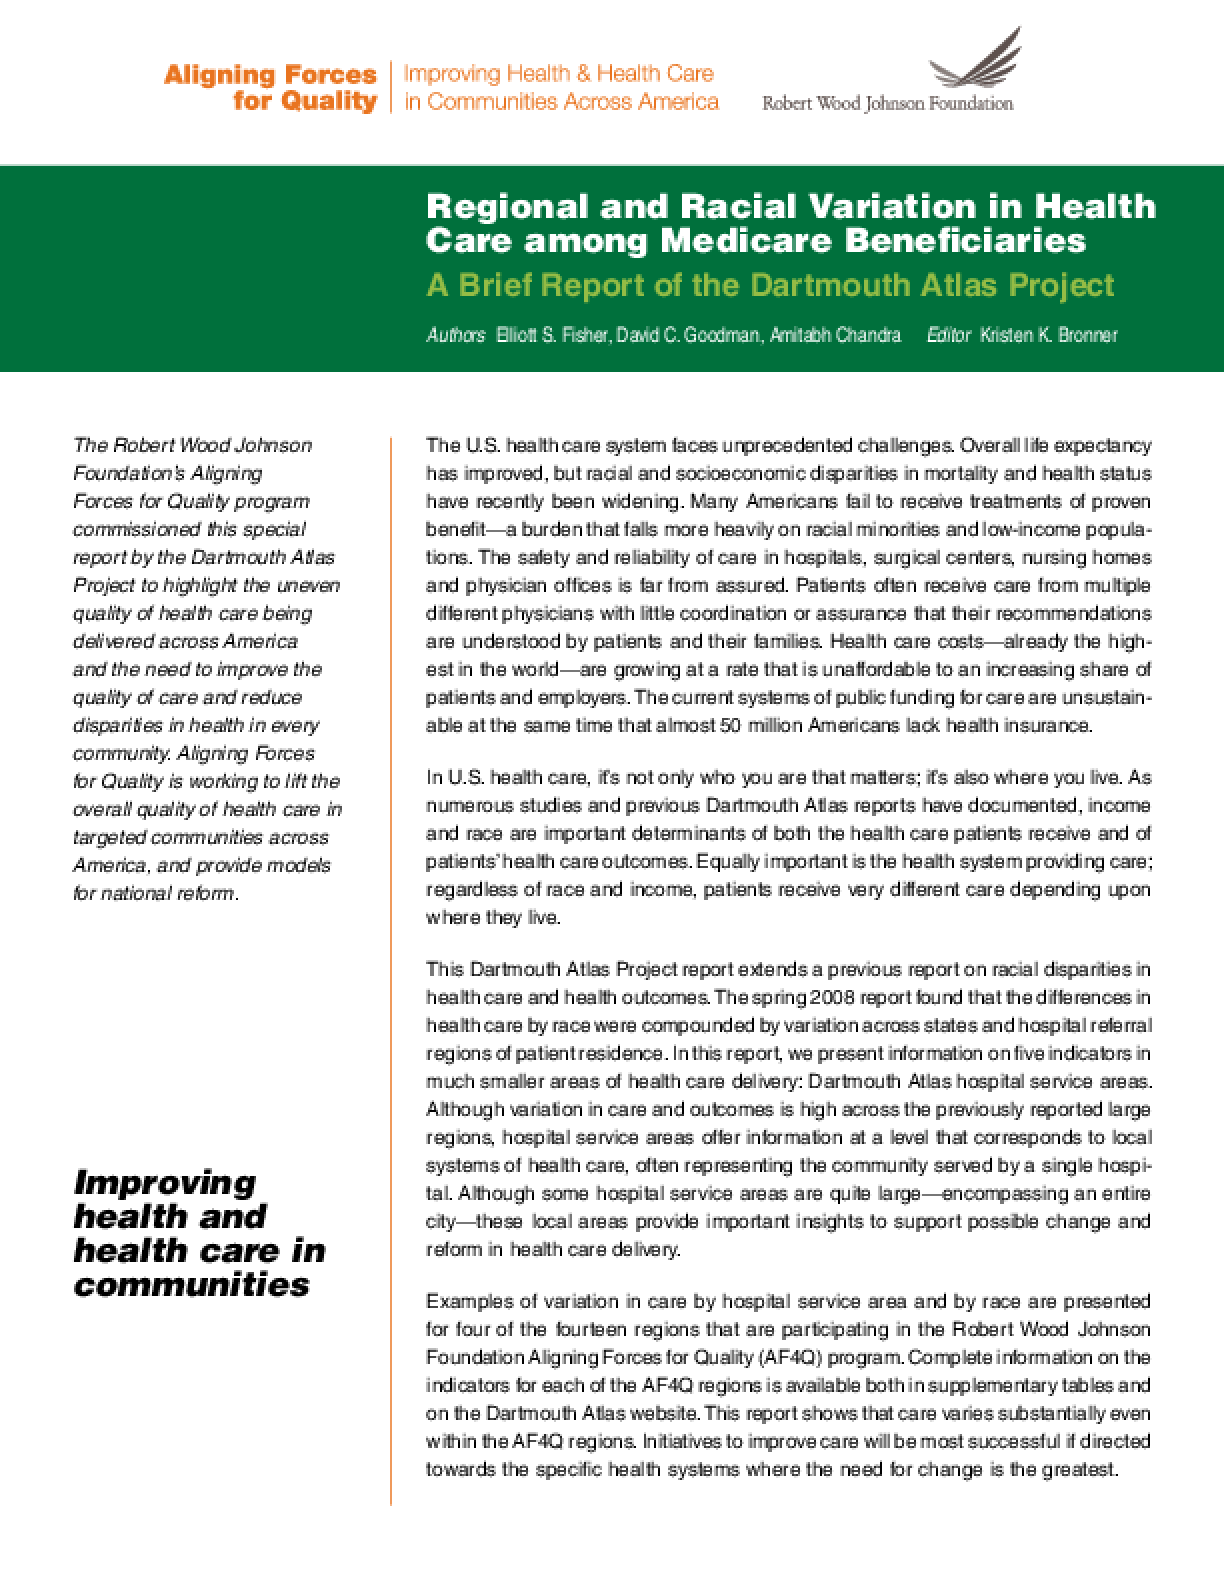 Regional and Racial Variation in Health Care Among Medicare Beneficiaries